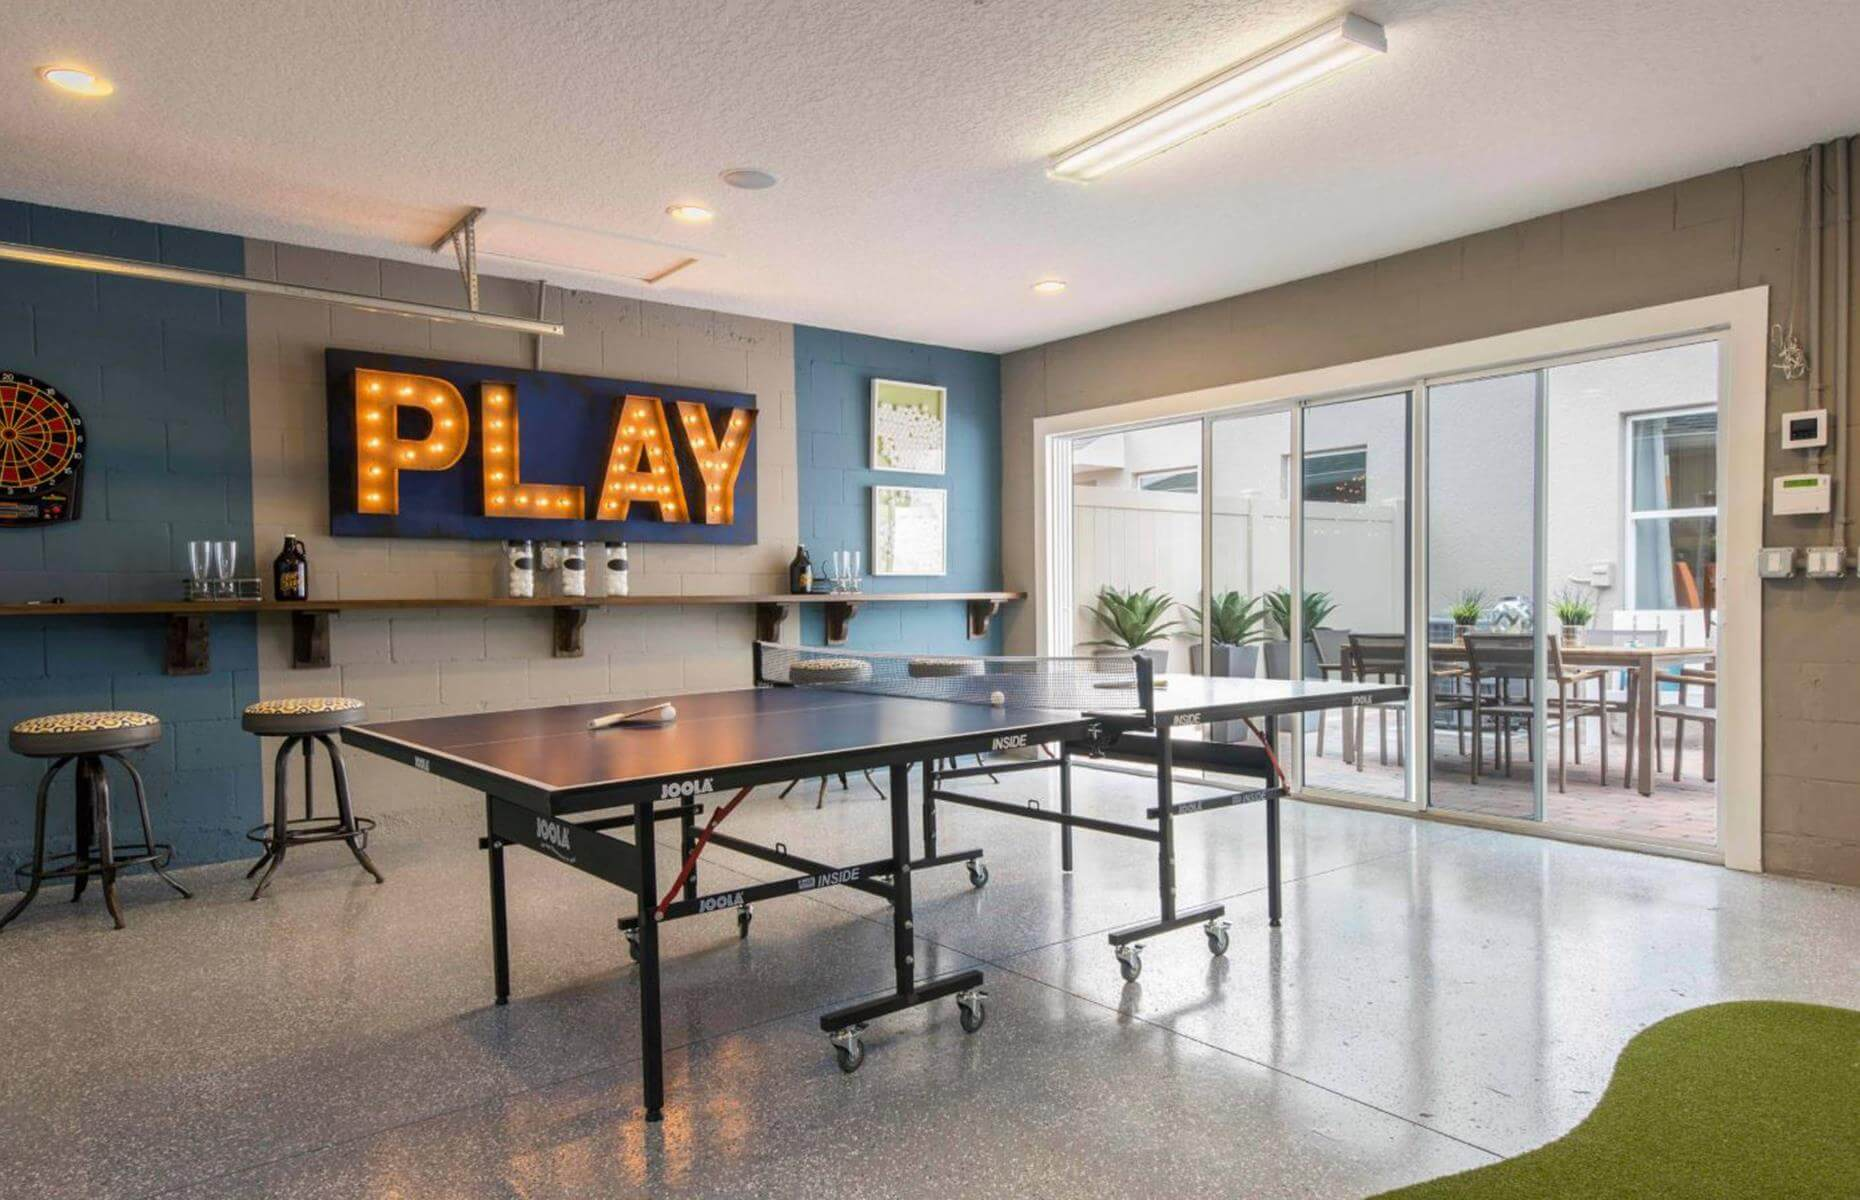 KEEP FUN GARAGE MAKEOVER LIVING SPACES